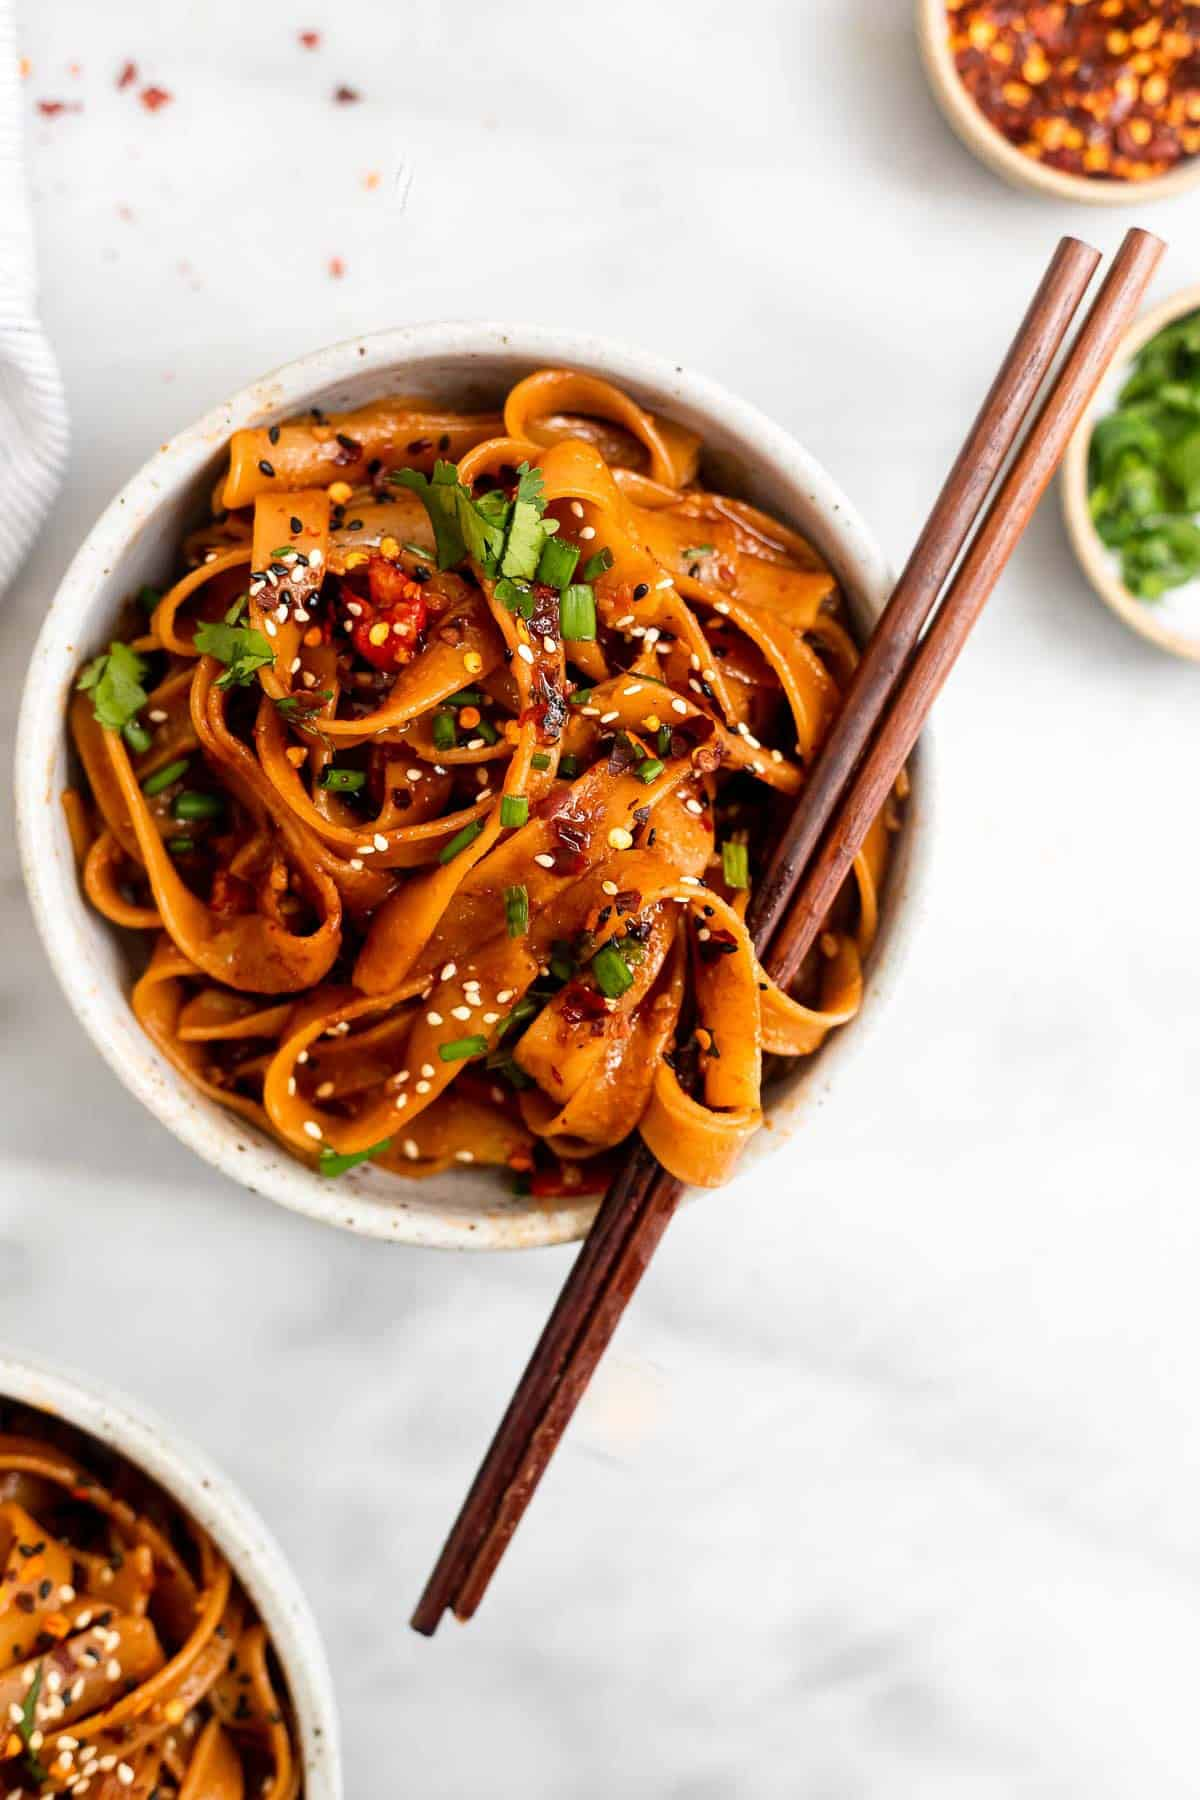 spicy noodles with chopsticks wrapped around the noodles